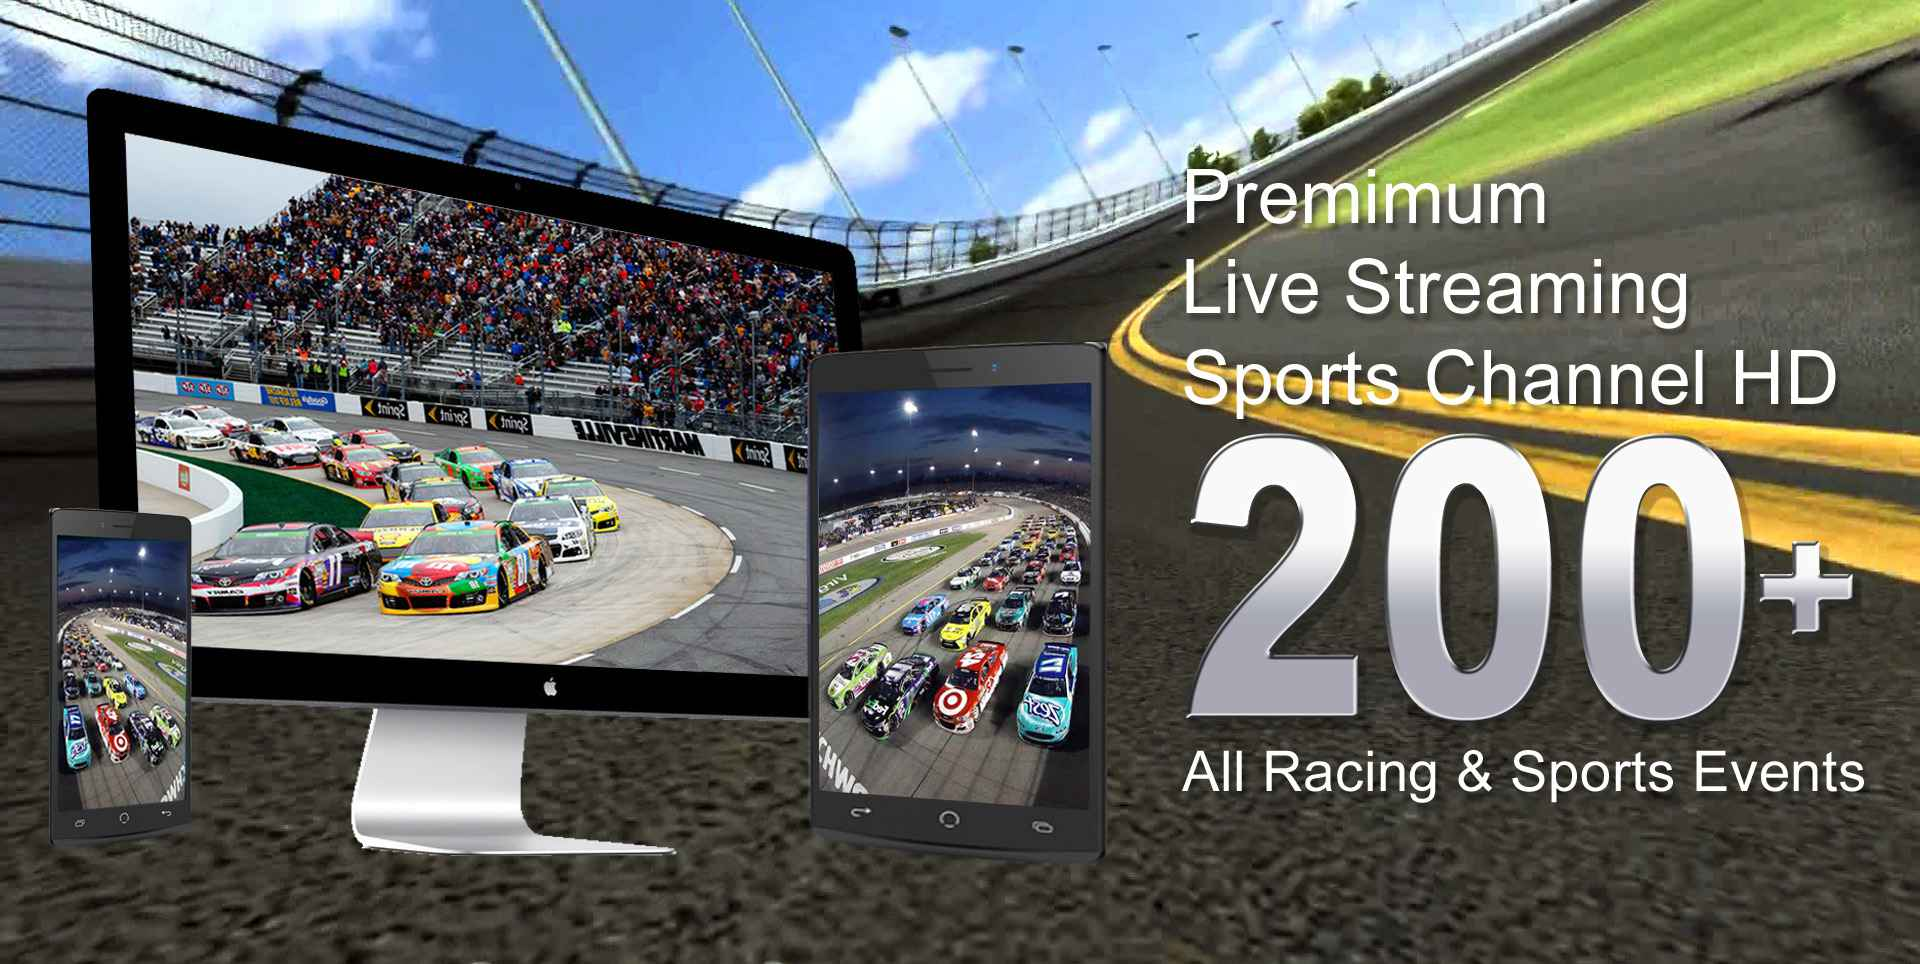 Nascar Race US Cellular 250 Live Broadcast